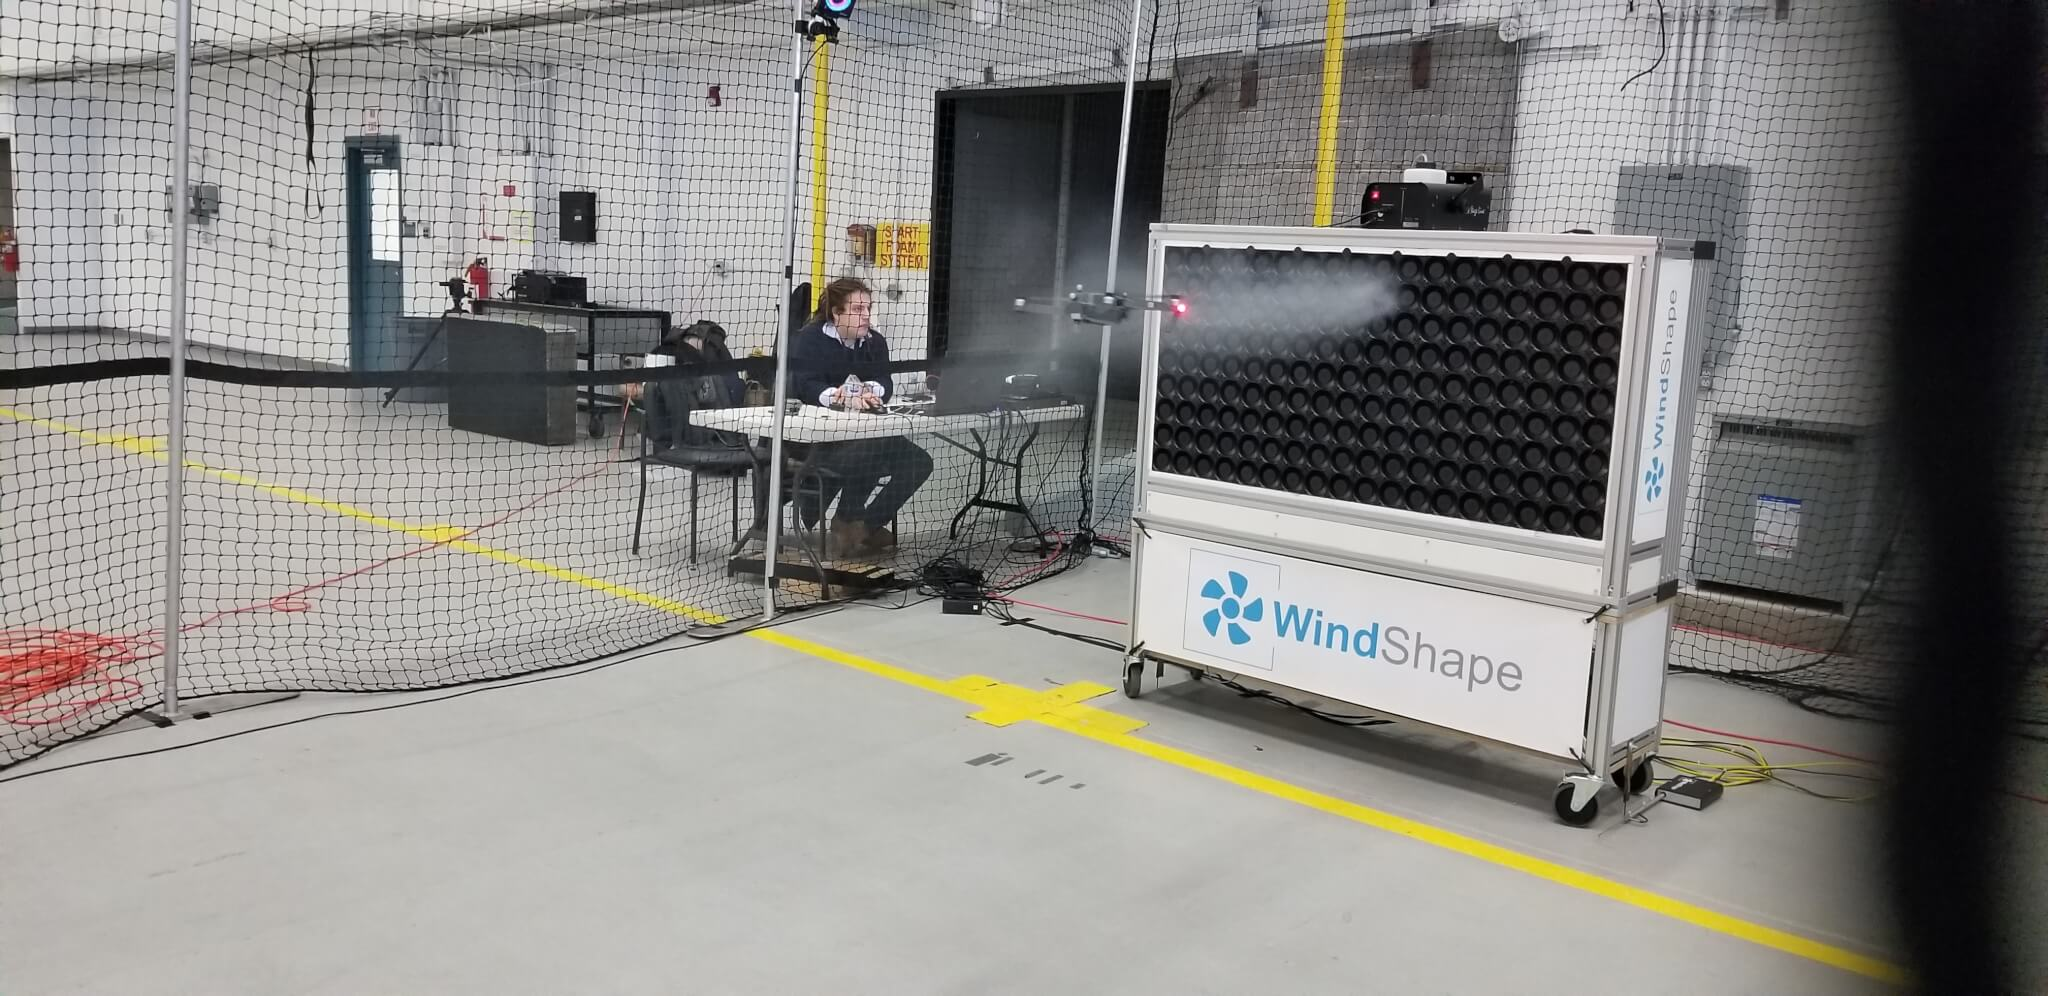 Drone Testing at NY UAS Test Site - WindShape